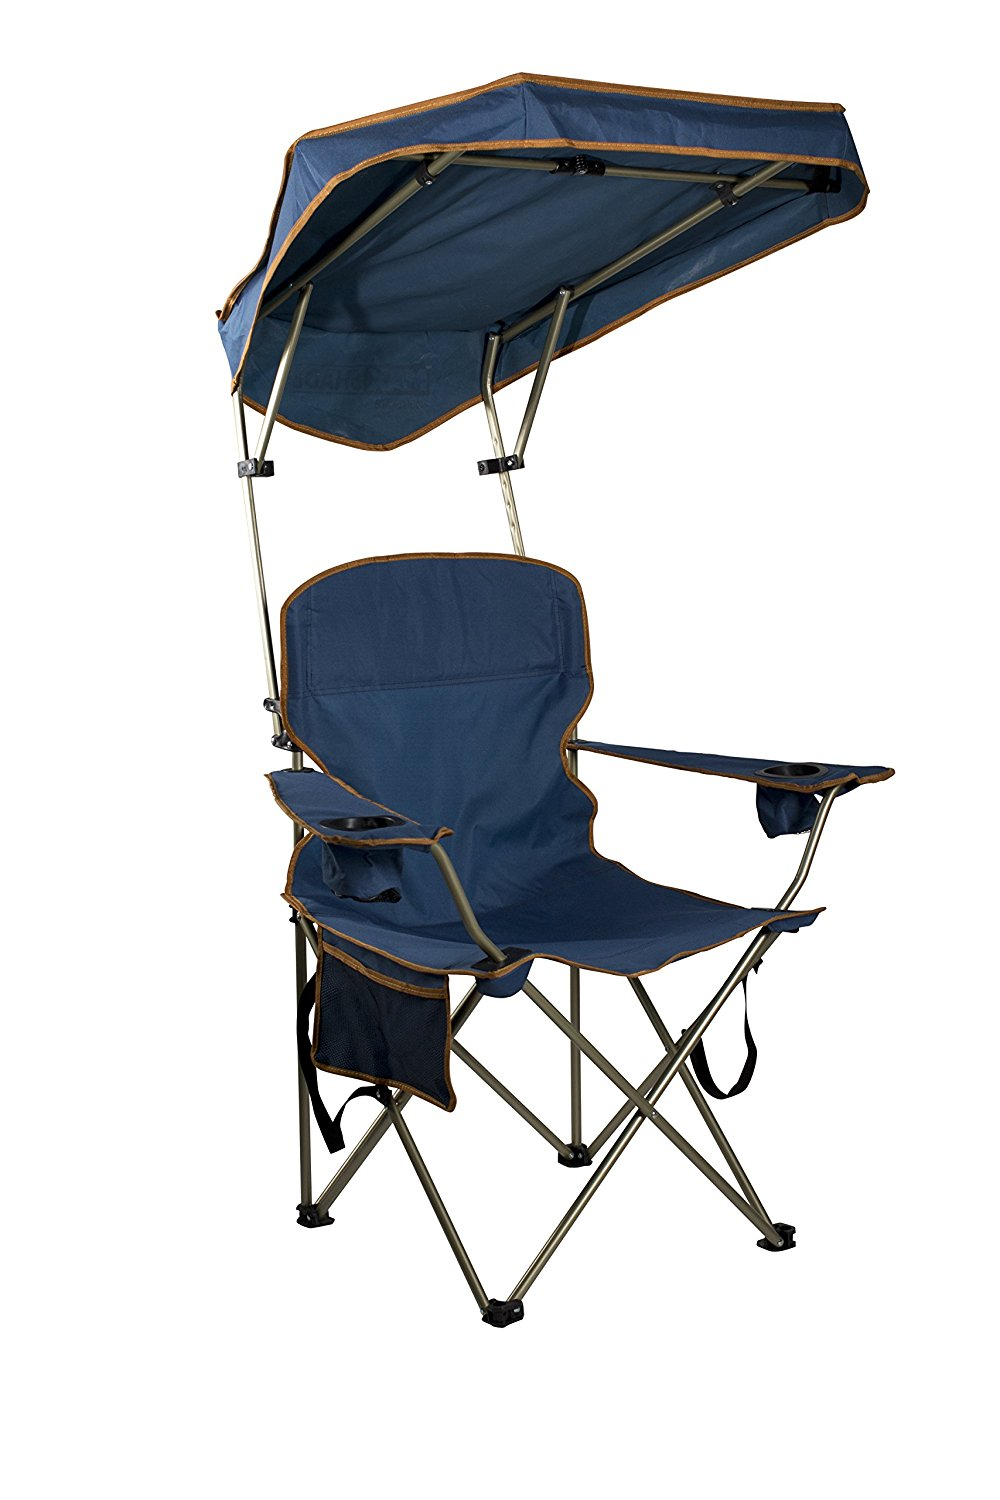 Shade Camp Chair - Navy